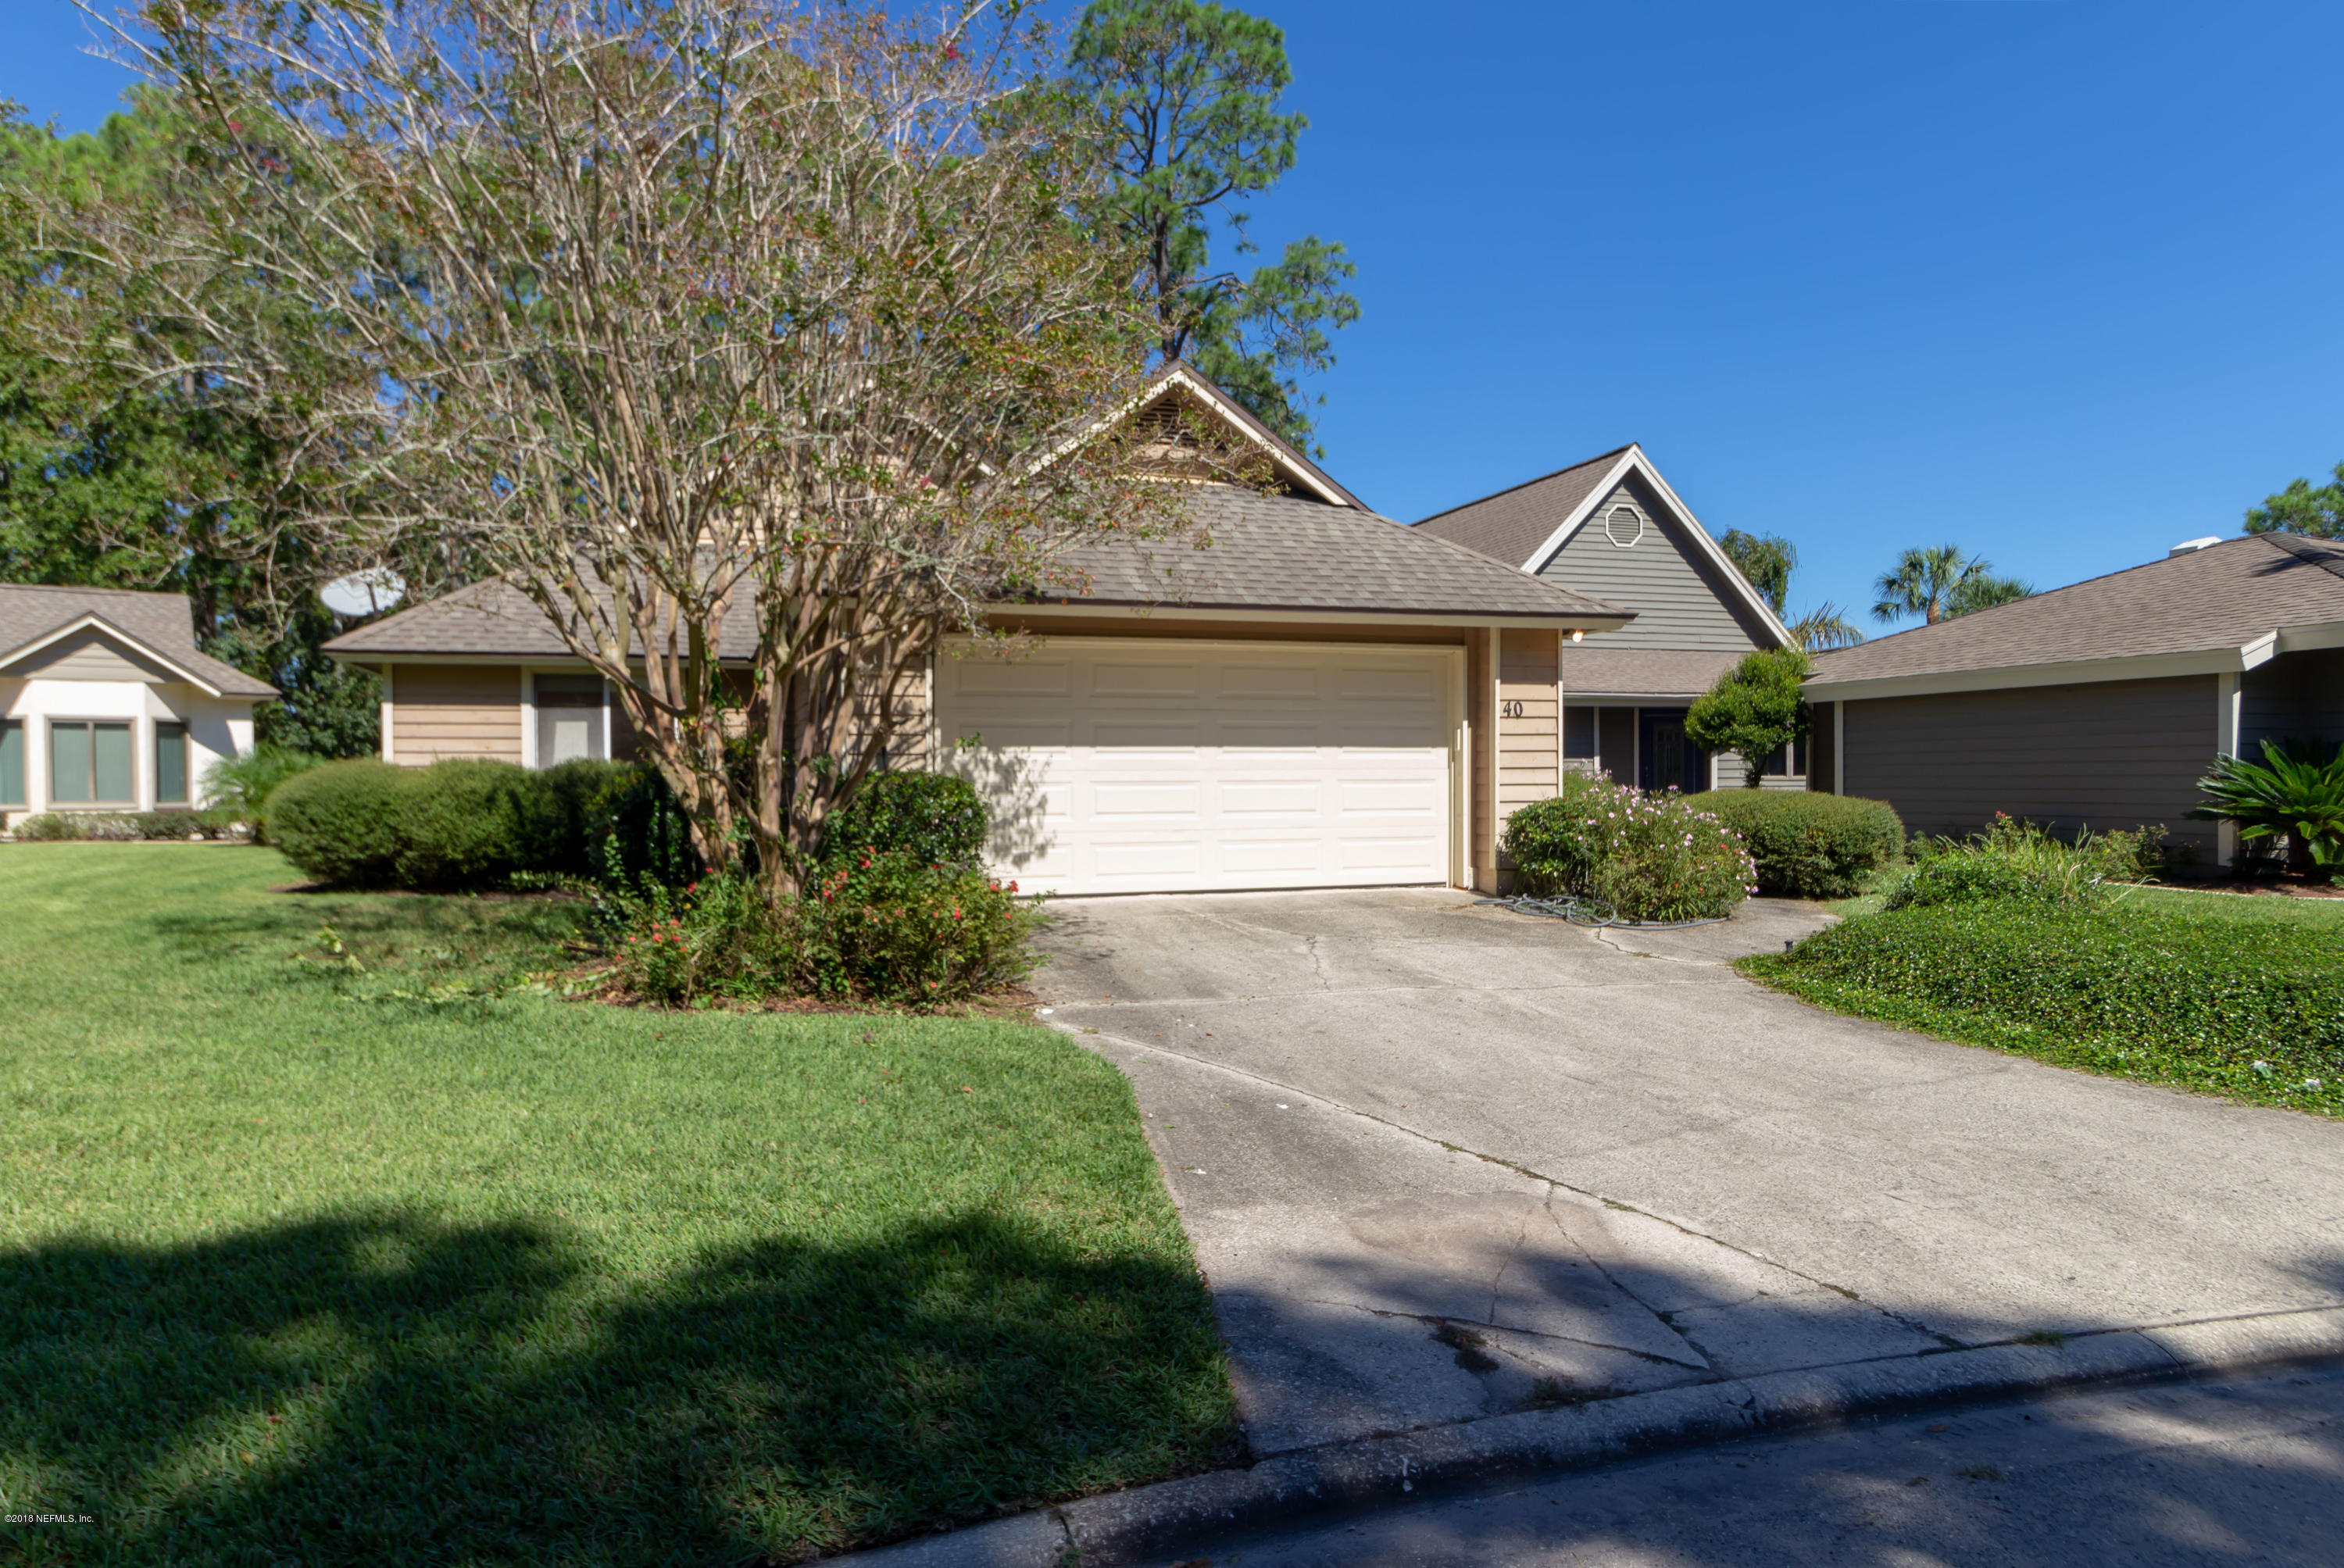 40 NORTHGATE, PONTE VEDRA BEACH, FLORIDA 32082, 3 Bedrooms Bedrooms, ,2 BathroomsBathrooms,Residential - single family,For sale,NORTHGATE,962187